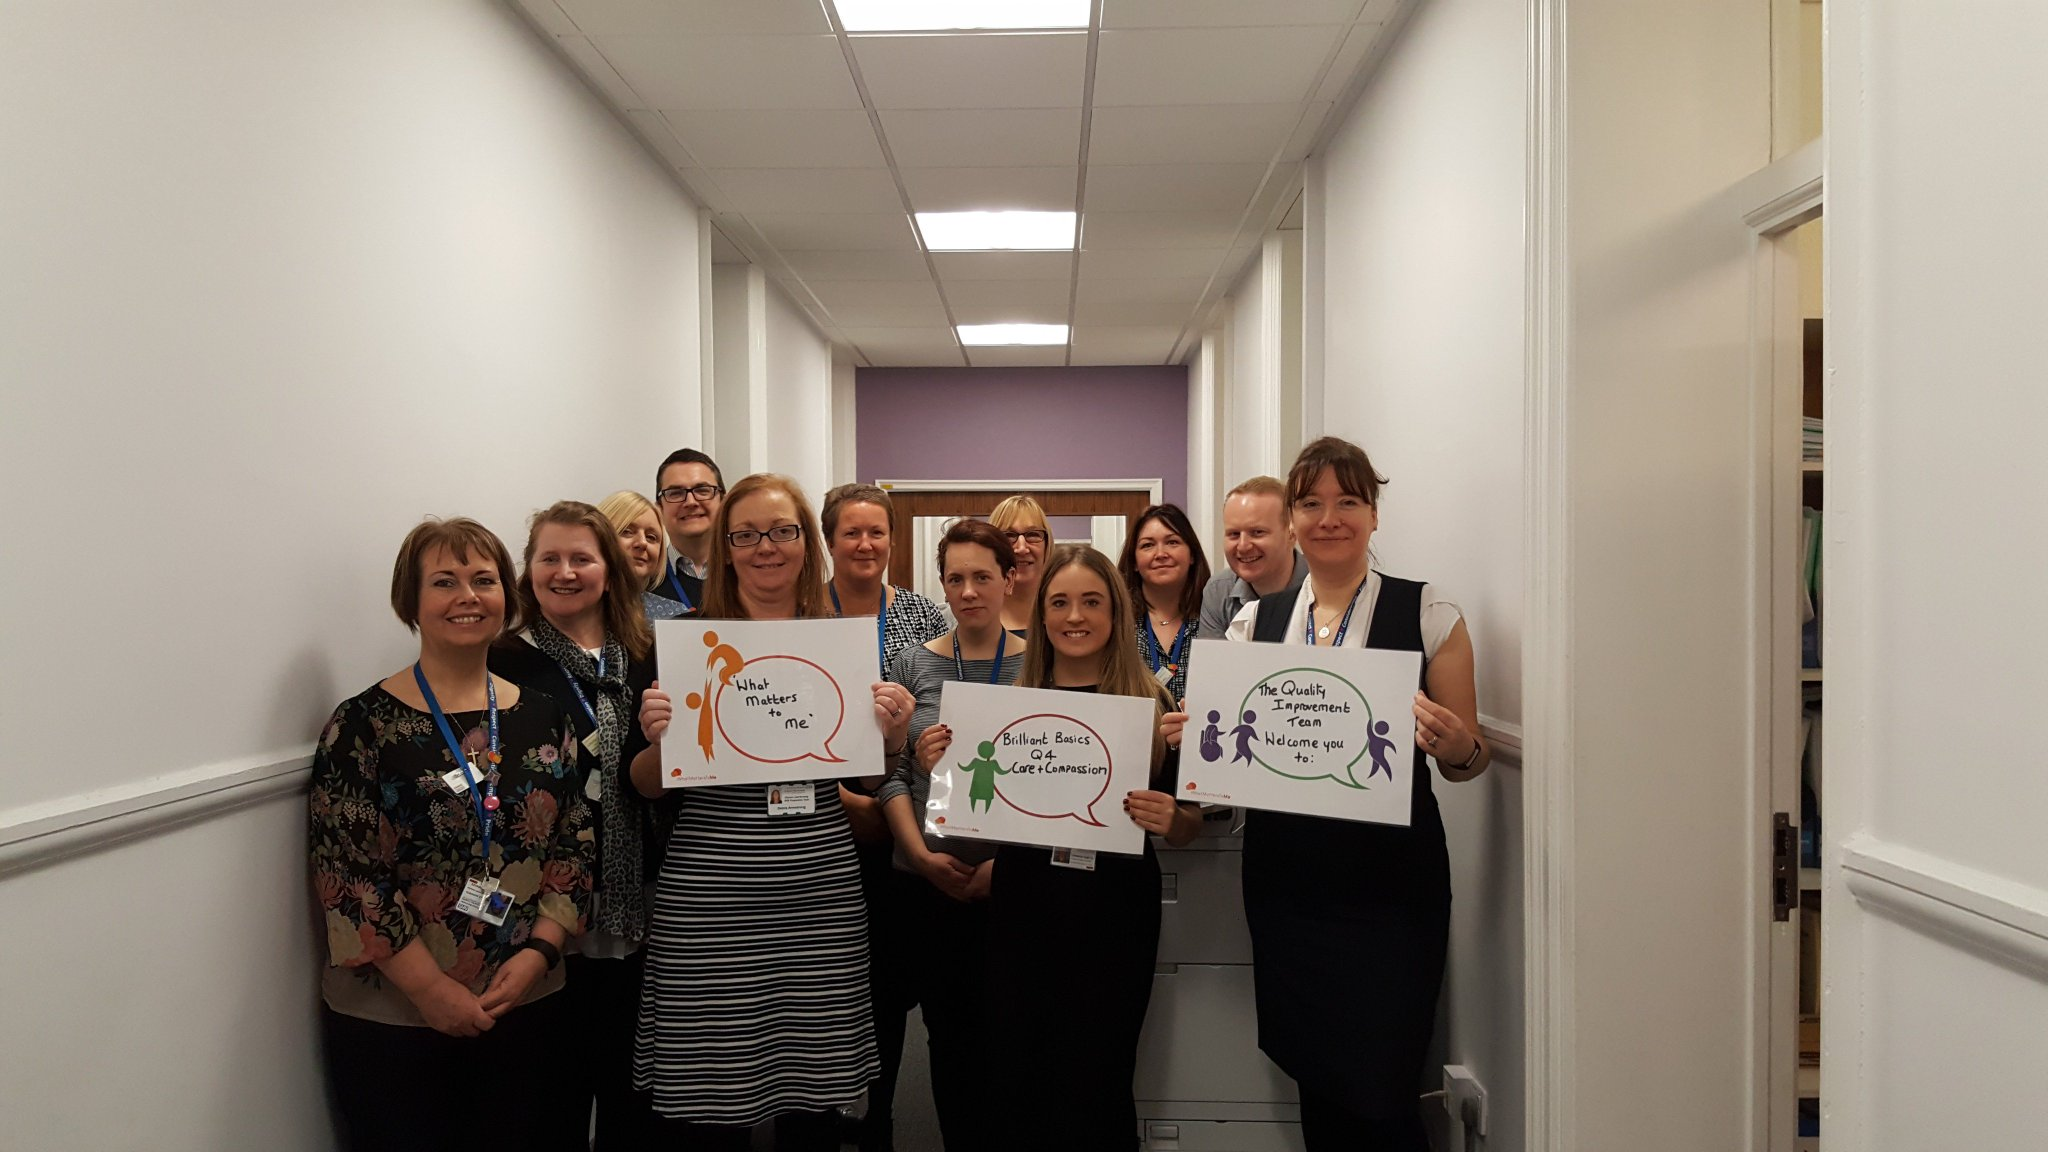 Patient Services Team pledge #wmtm to continue to support staff to be the best  they can be & ensure the best patient experience @CMFTNHS ❤️ https://t.co/FXemAZwPh1